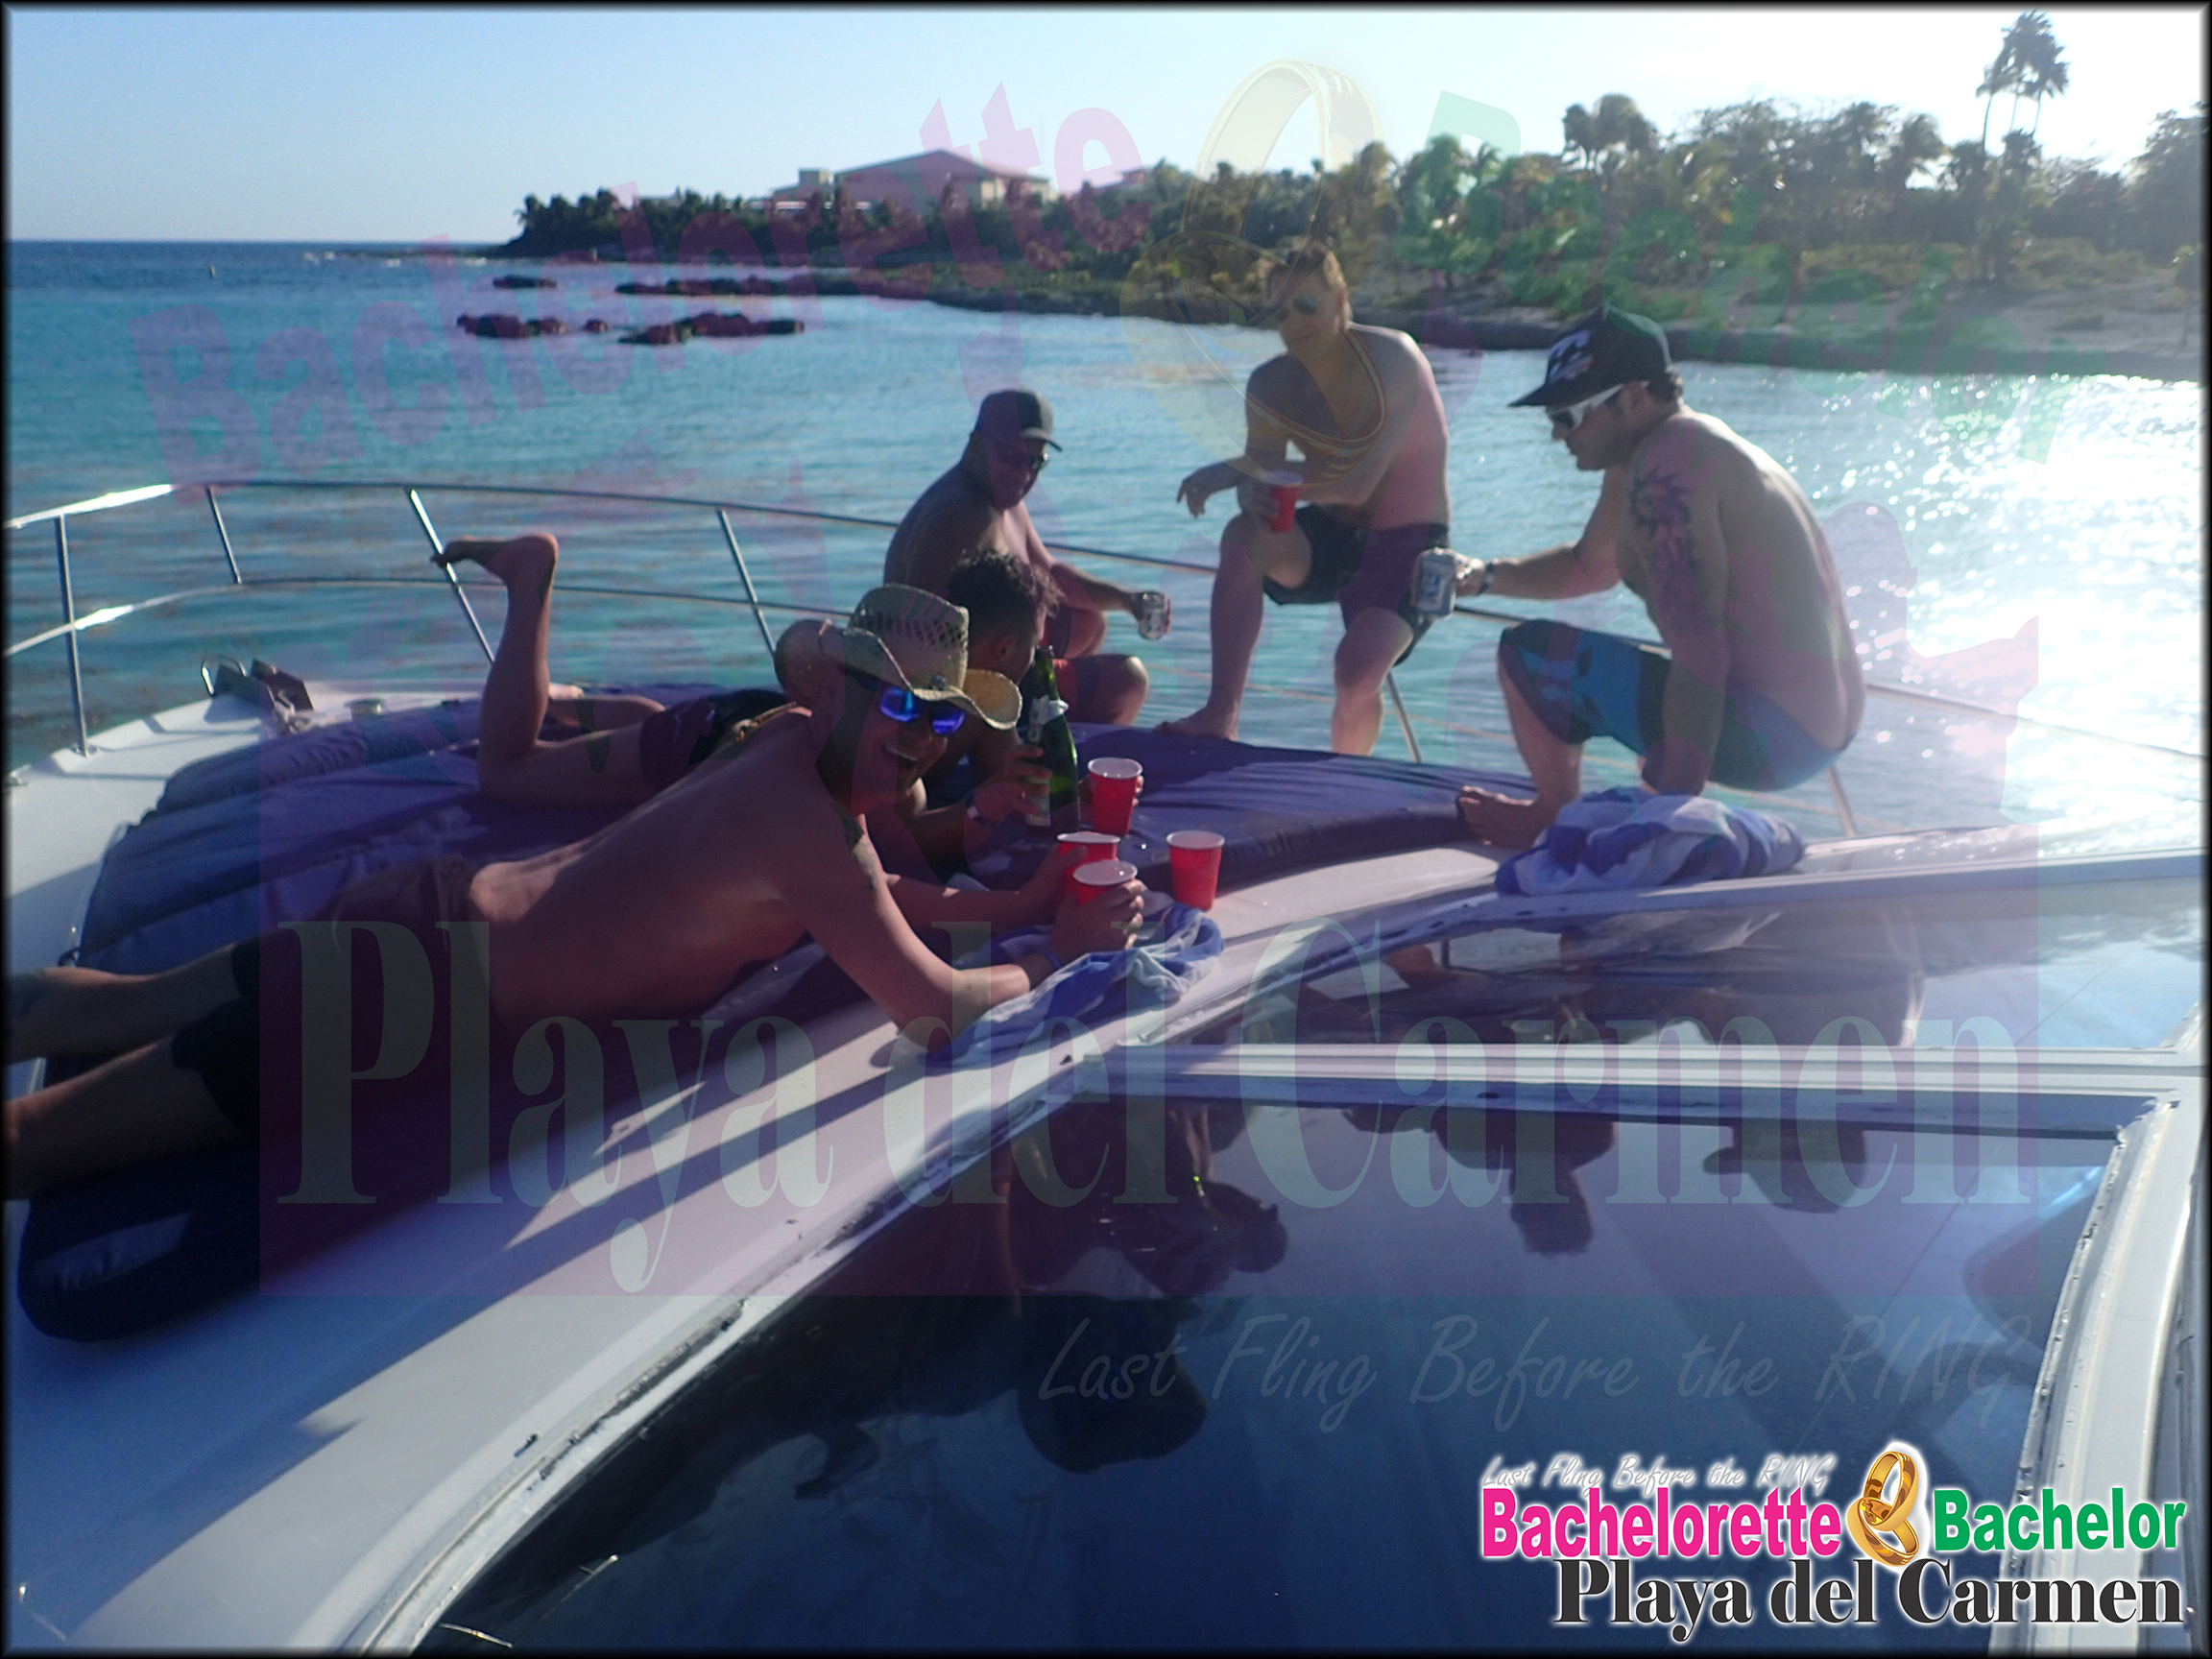 Bachelor party yachting playa del carmen bachelorette for Deep sea fishing playa del carmen